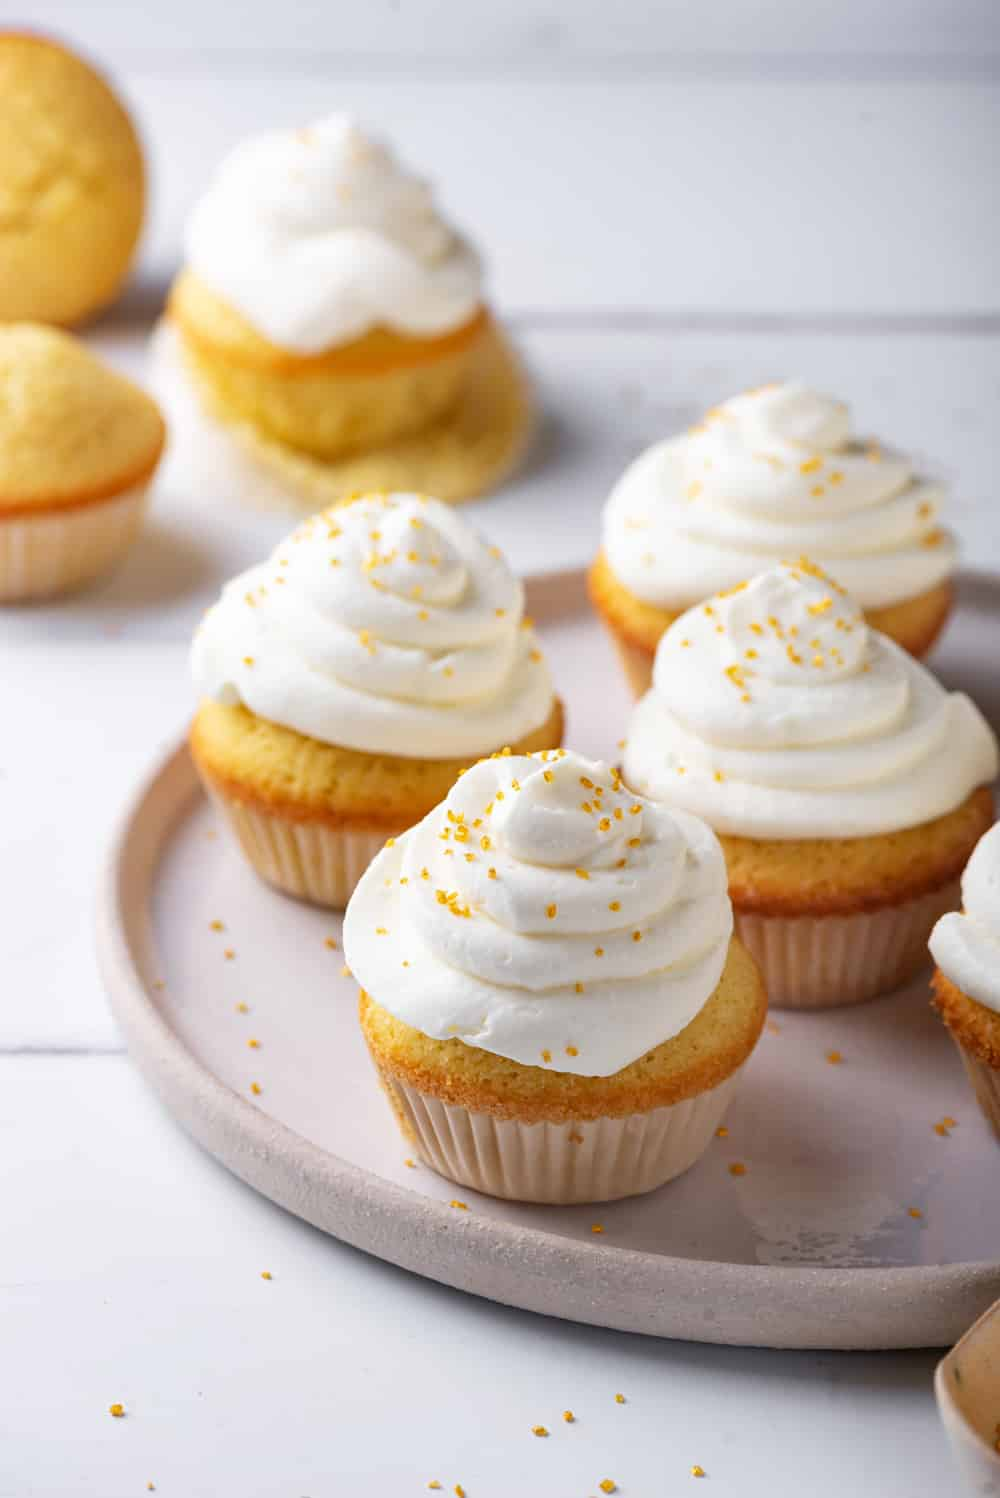 A grey plate with four keto vanilla cupcakes with keto cream cheese frosting on top. There is one frosted cupcake with the wrapping off behind the plate on the white counter. Two unfrosted cupcakes are next to it with one standing up and one on its front side.